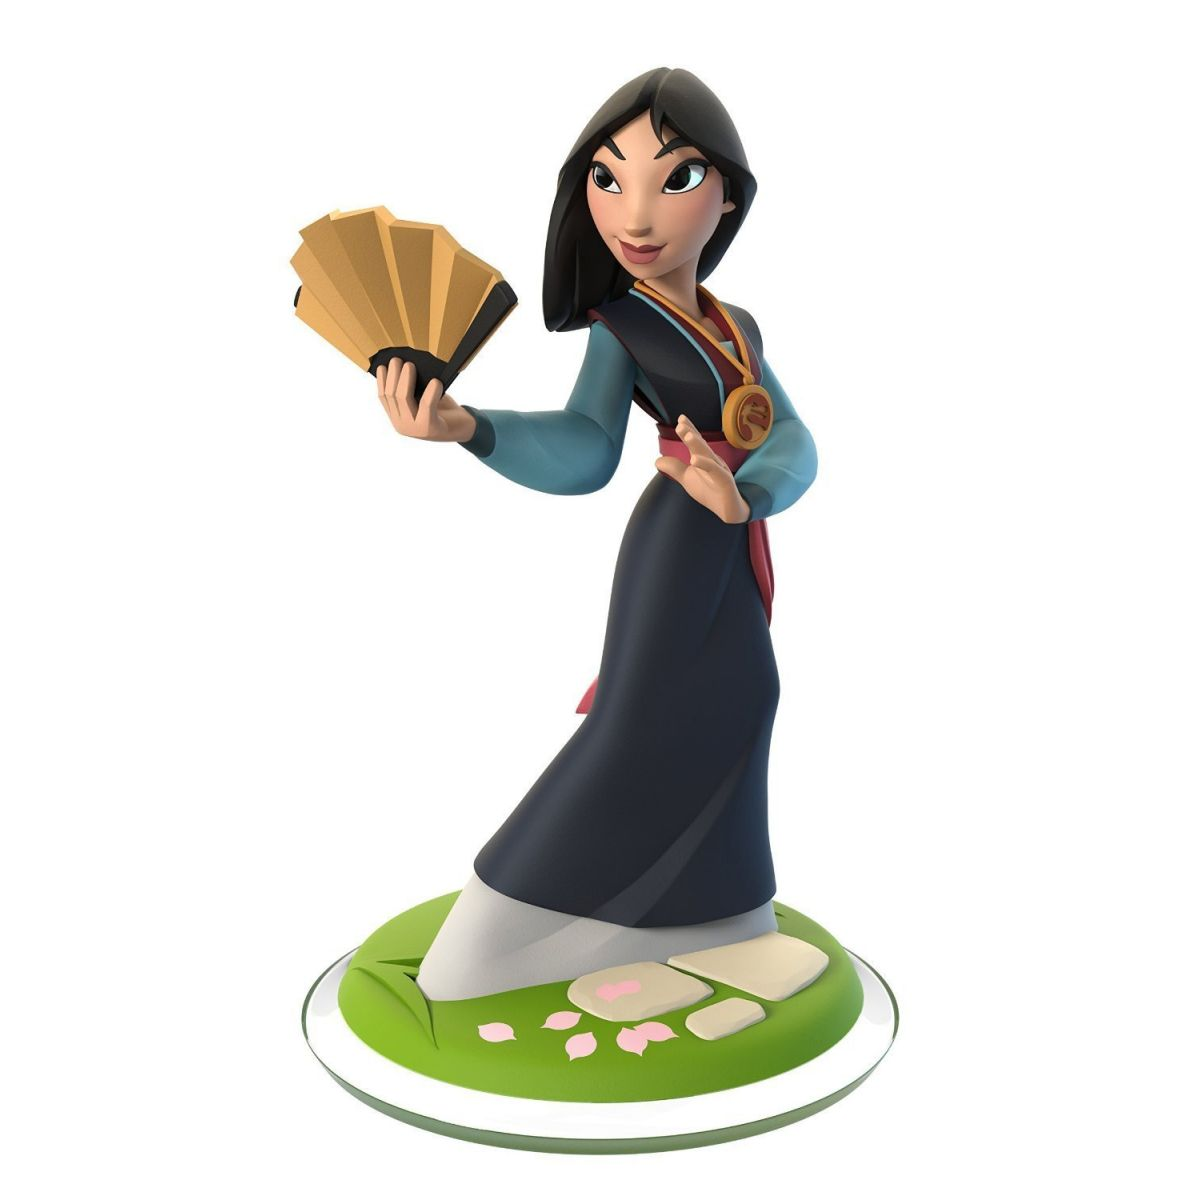 Disney Infinity 3.0 Edition: Mulan Figure - Movie Freaks Collectibles